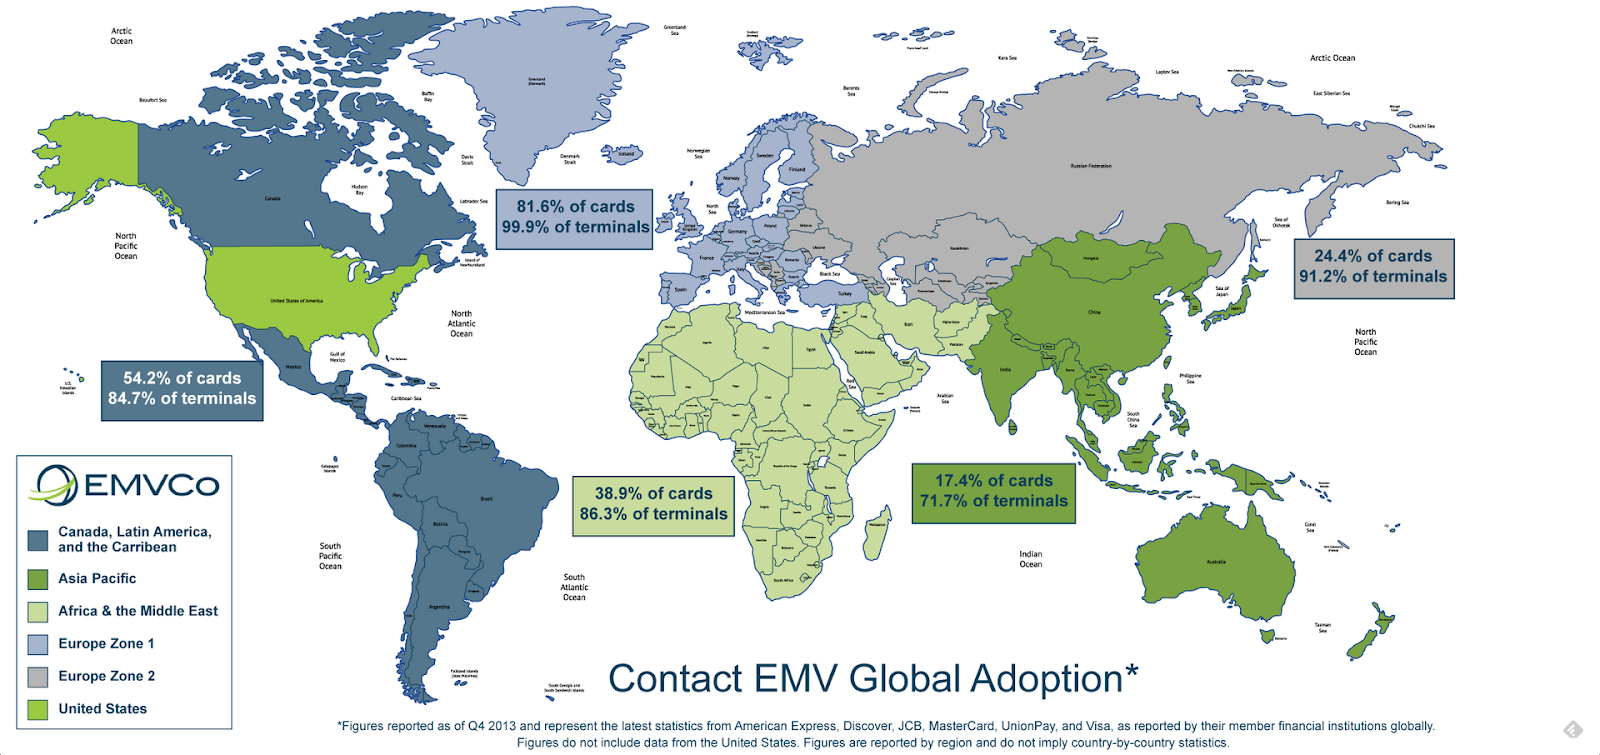 Contact EMV Global Adoption vs Apple Pay - Moblized